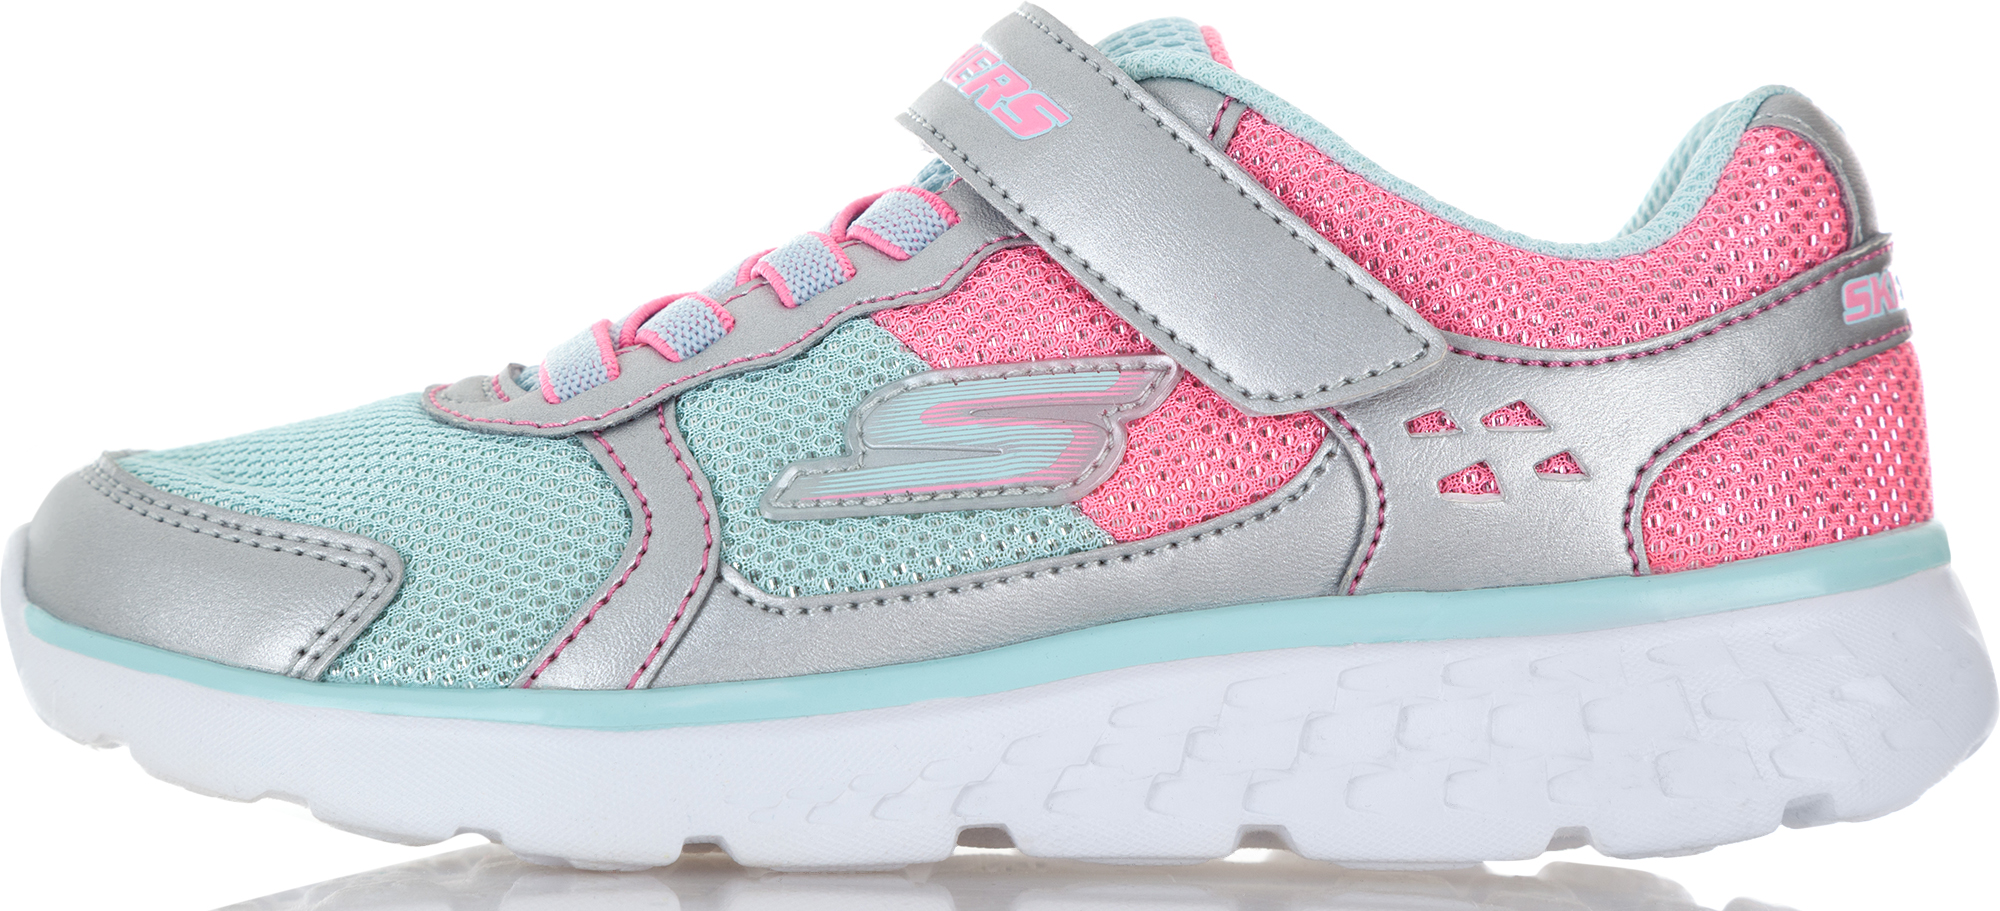 Skechers Кроссовки для девочек Skechers Go Run 400 Sparkle Sprinter